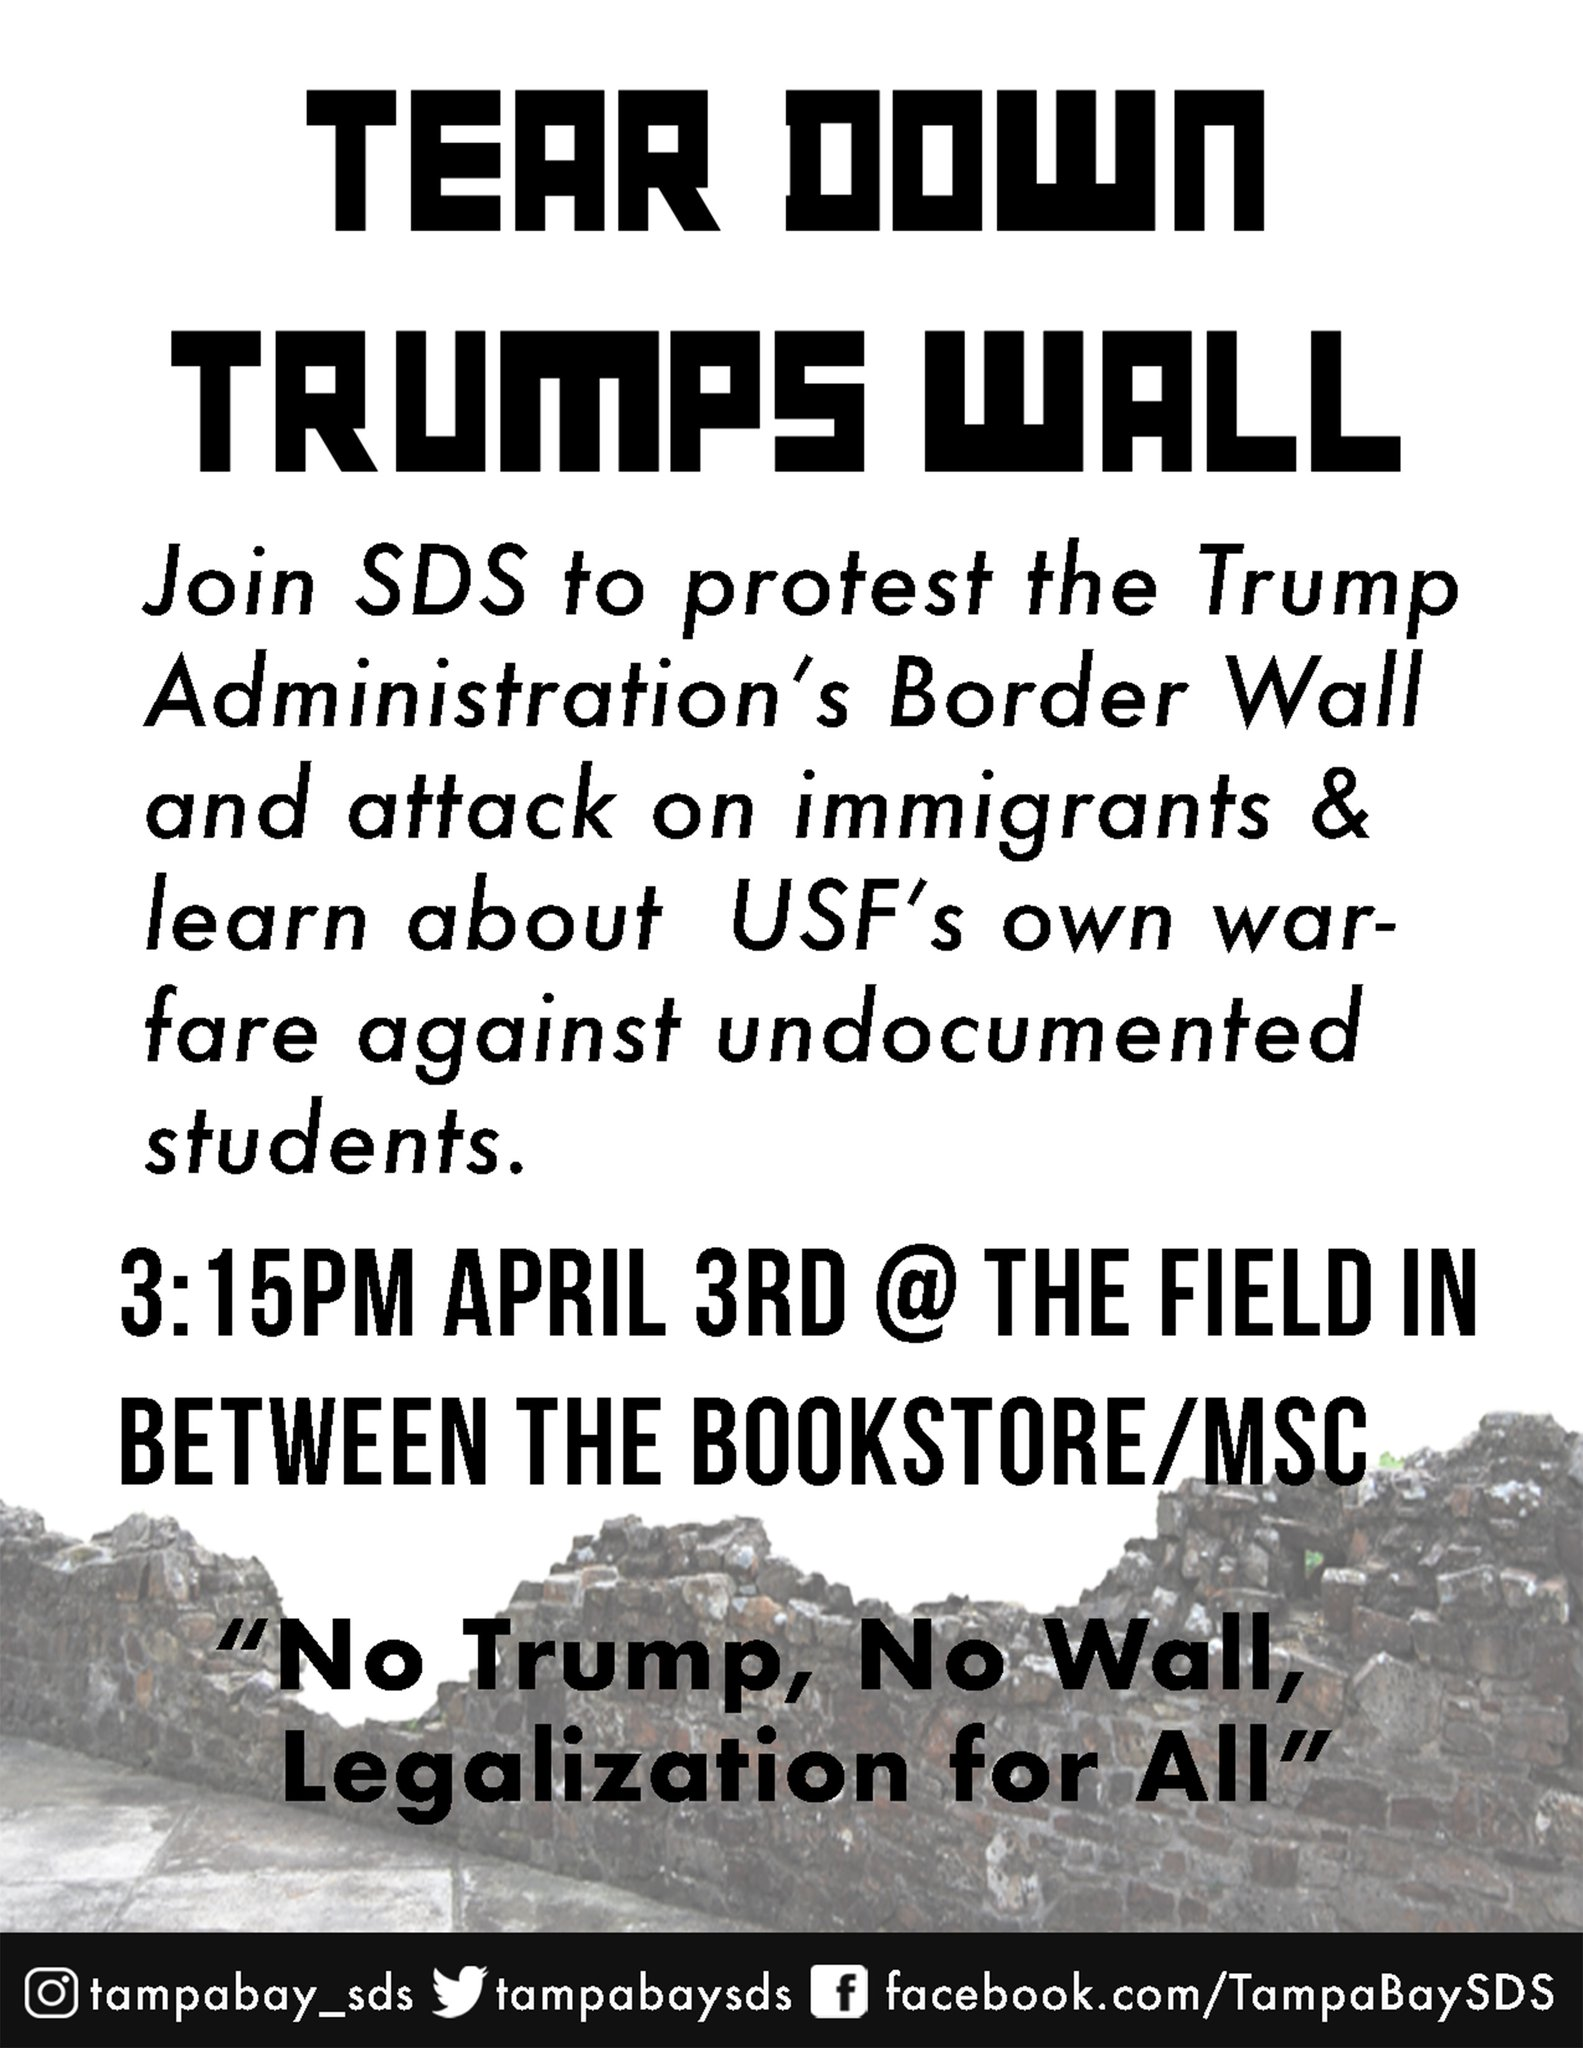 poster announcing SDS protest of Trump border wall and attack on immigrants at USF